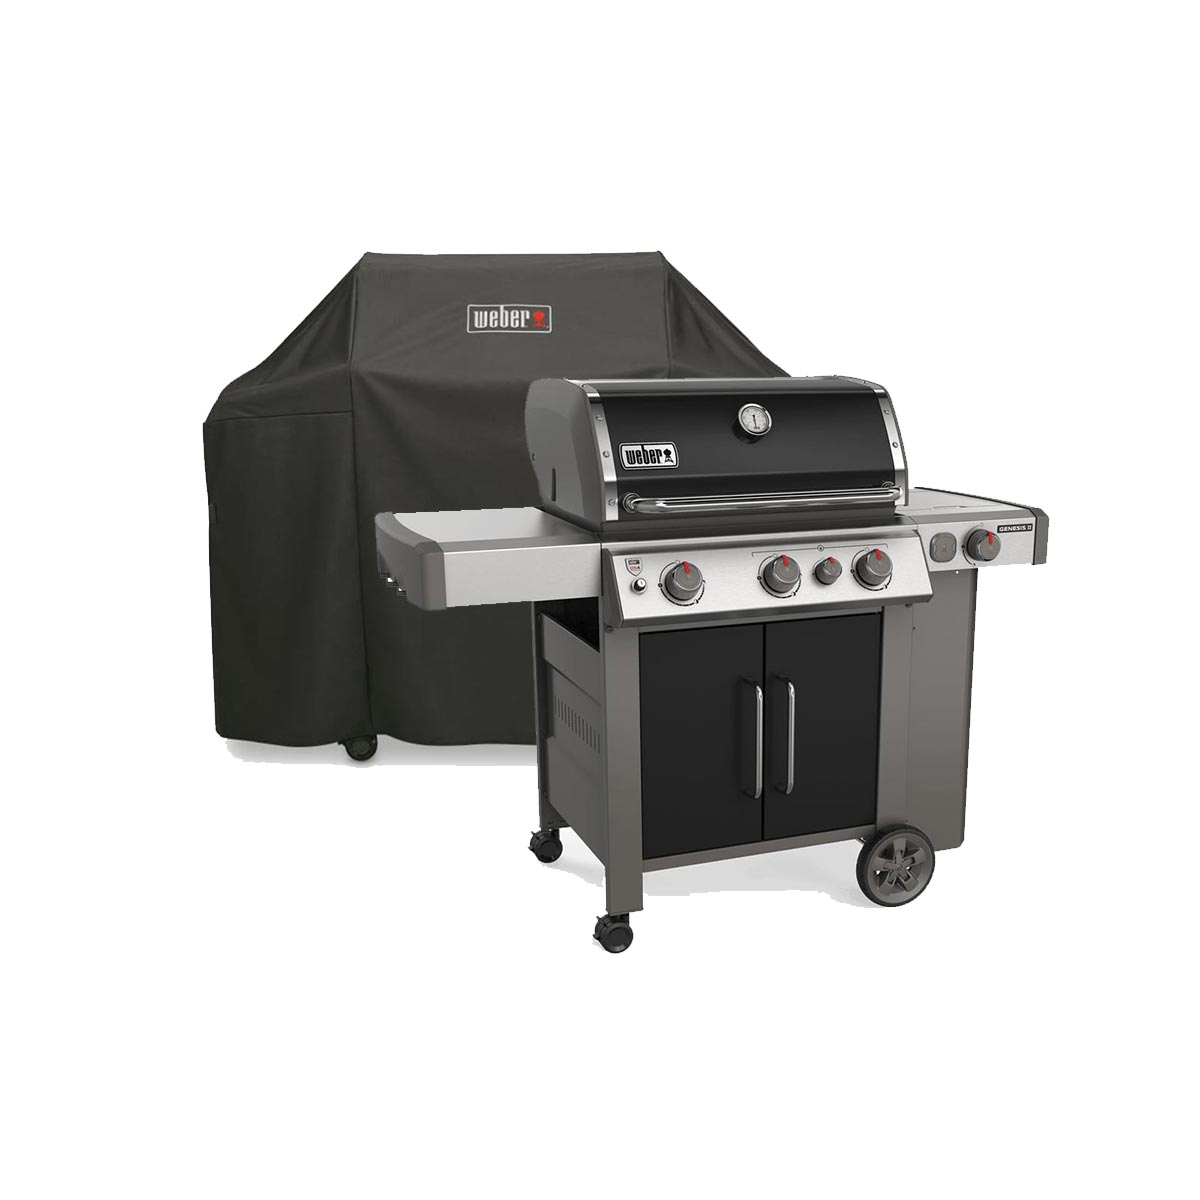 weber-ep335-gas-braai-with-cover